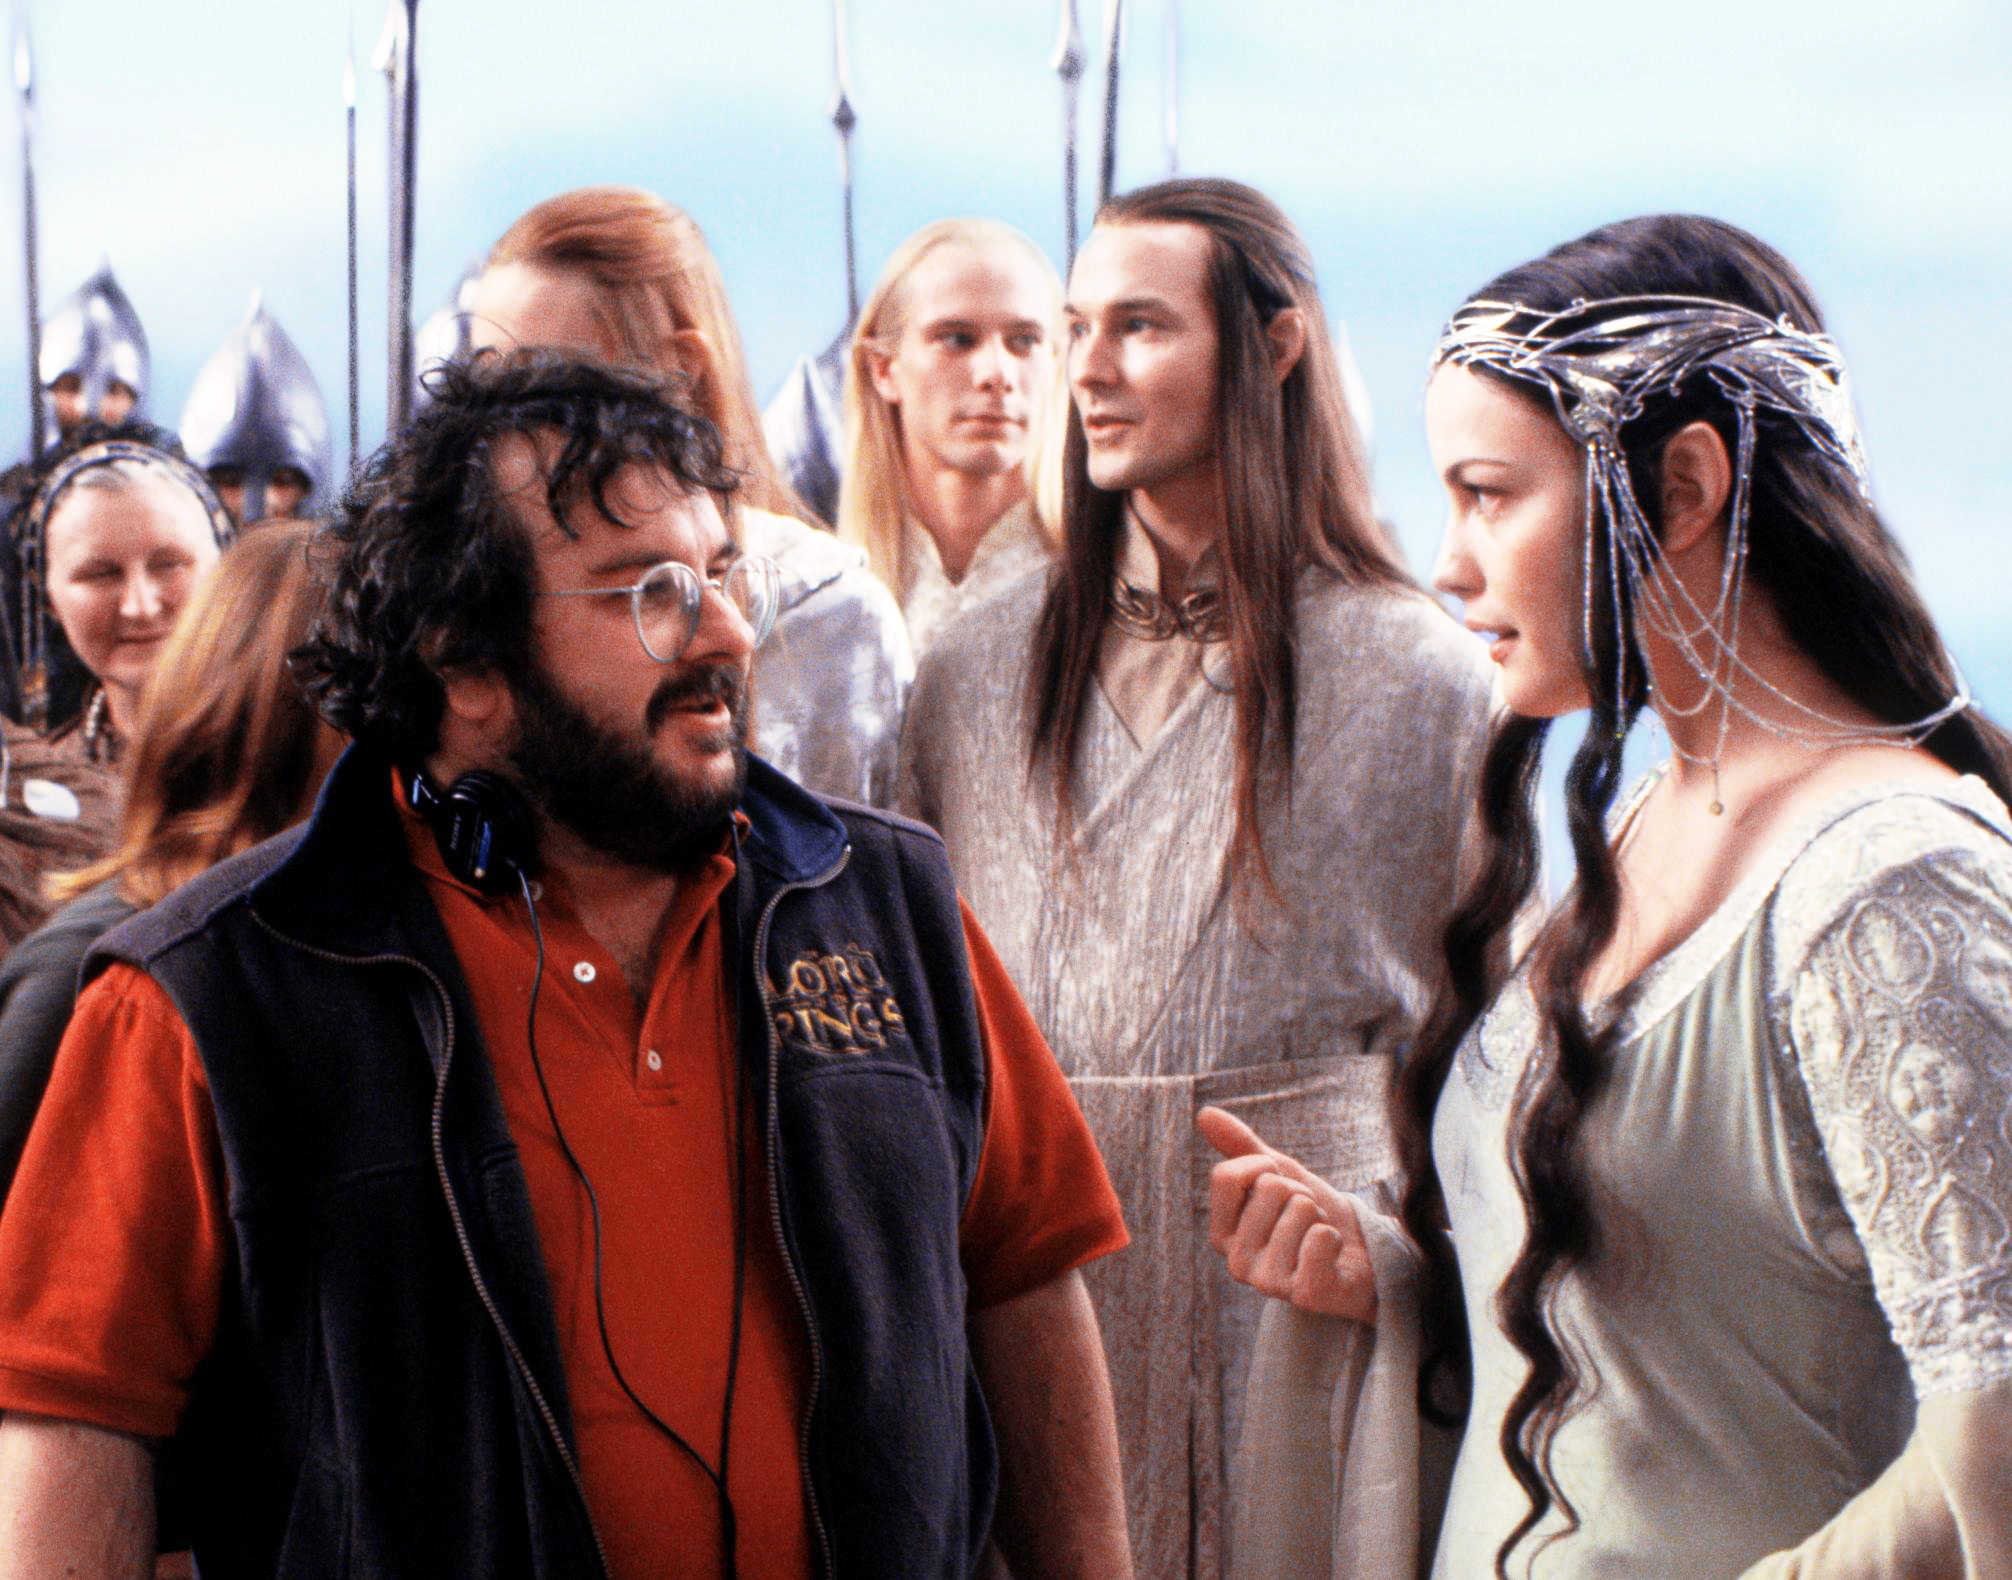 Peter Jackson and Liv Tyler filming The Lord of the Rings: The Return of the King, 2003.